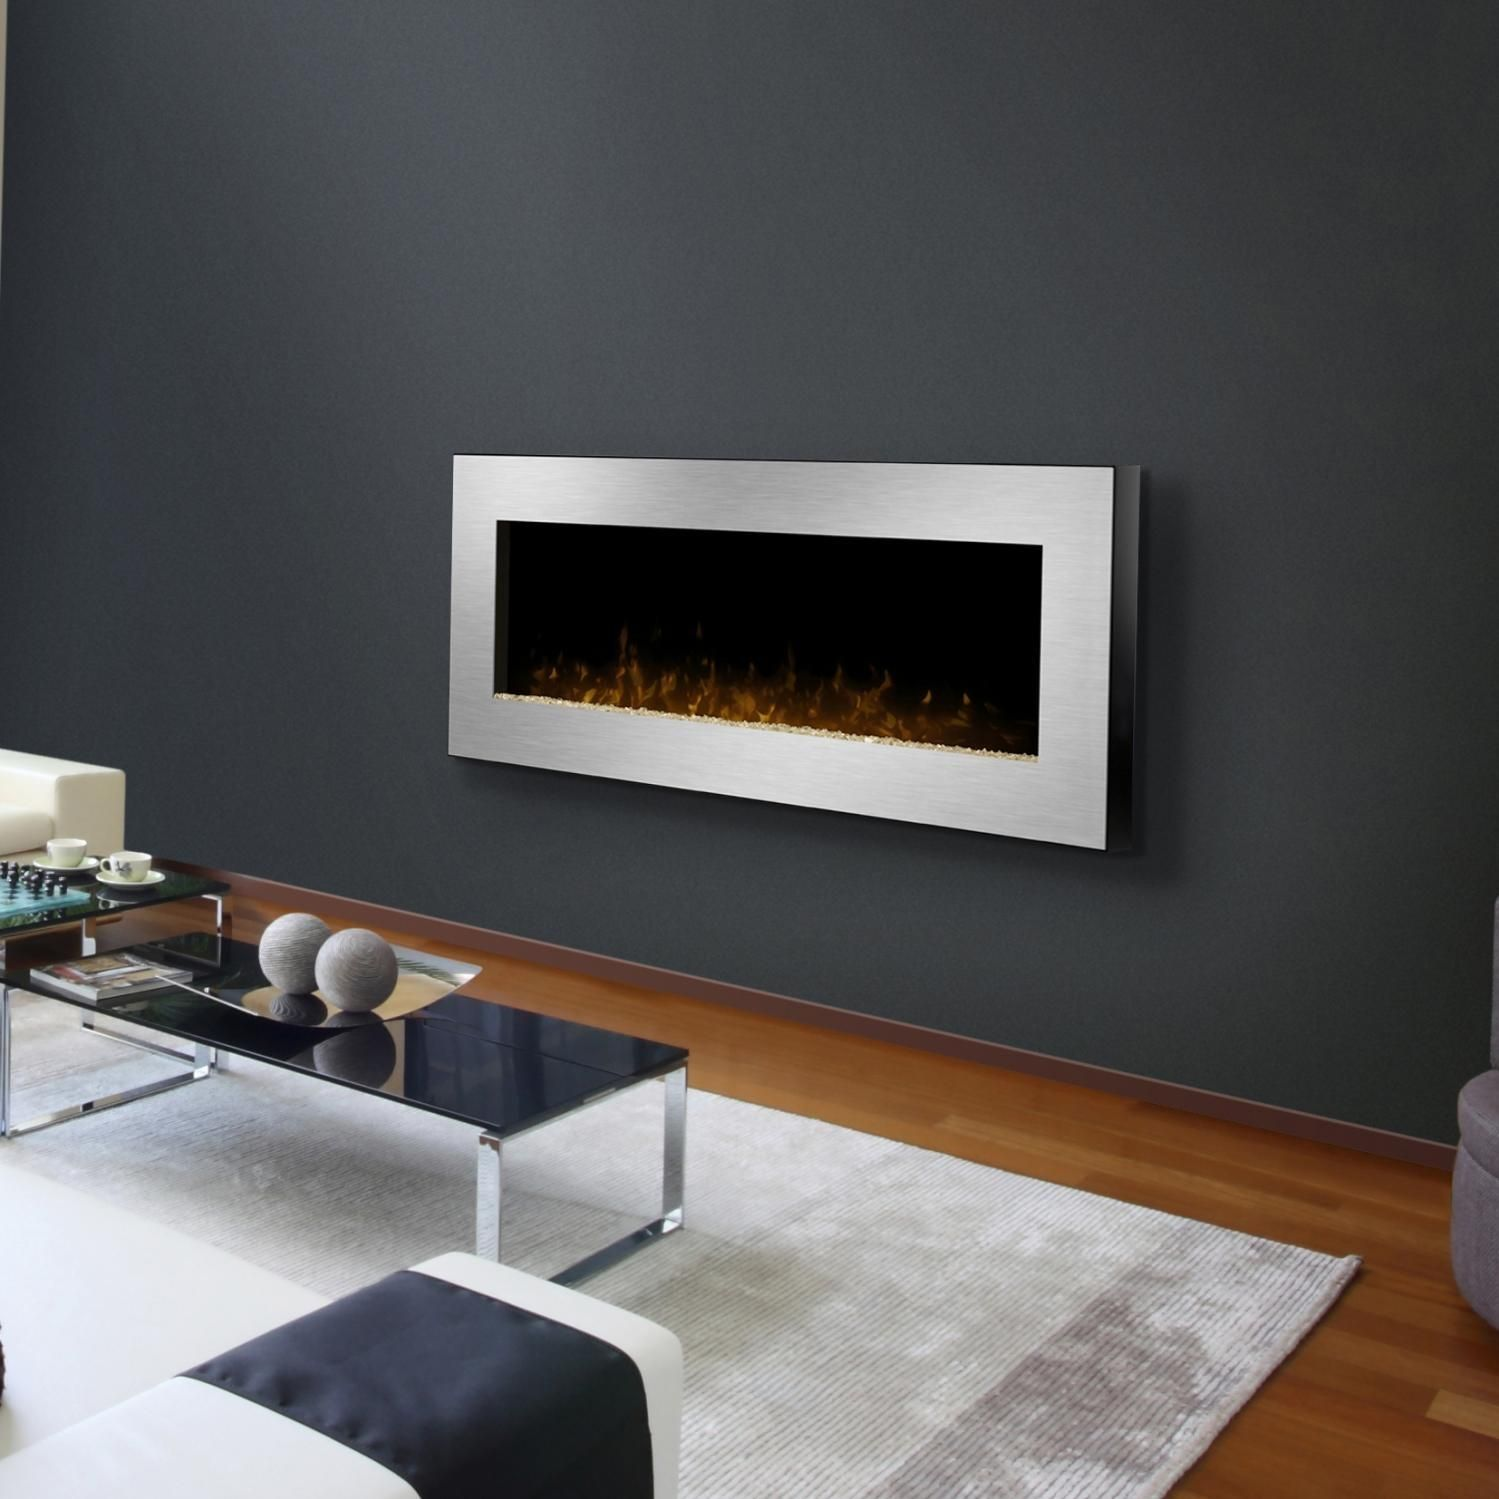 electric heat heater fireplace artificial bottom real inserts vent but without front wall look mount delightful of mounted images with the